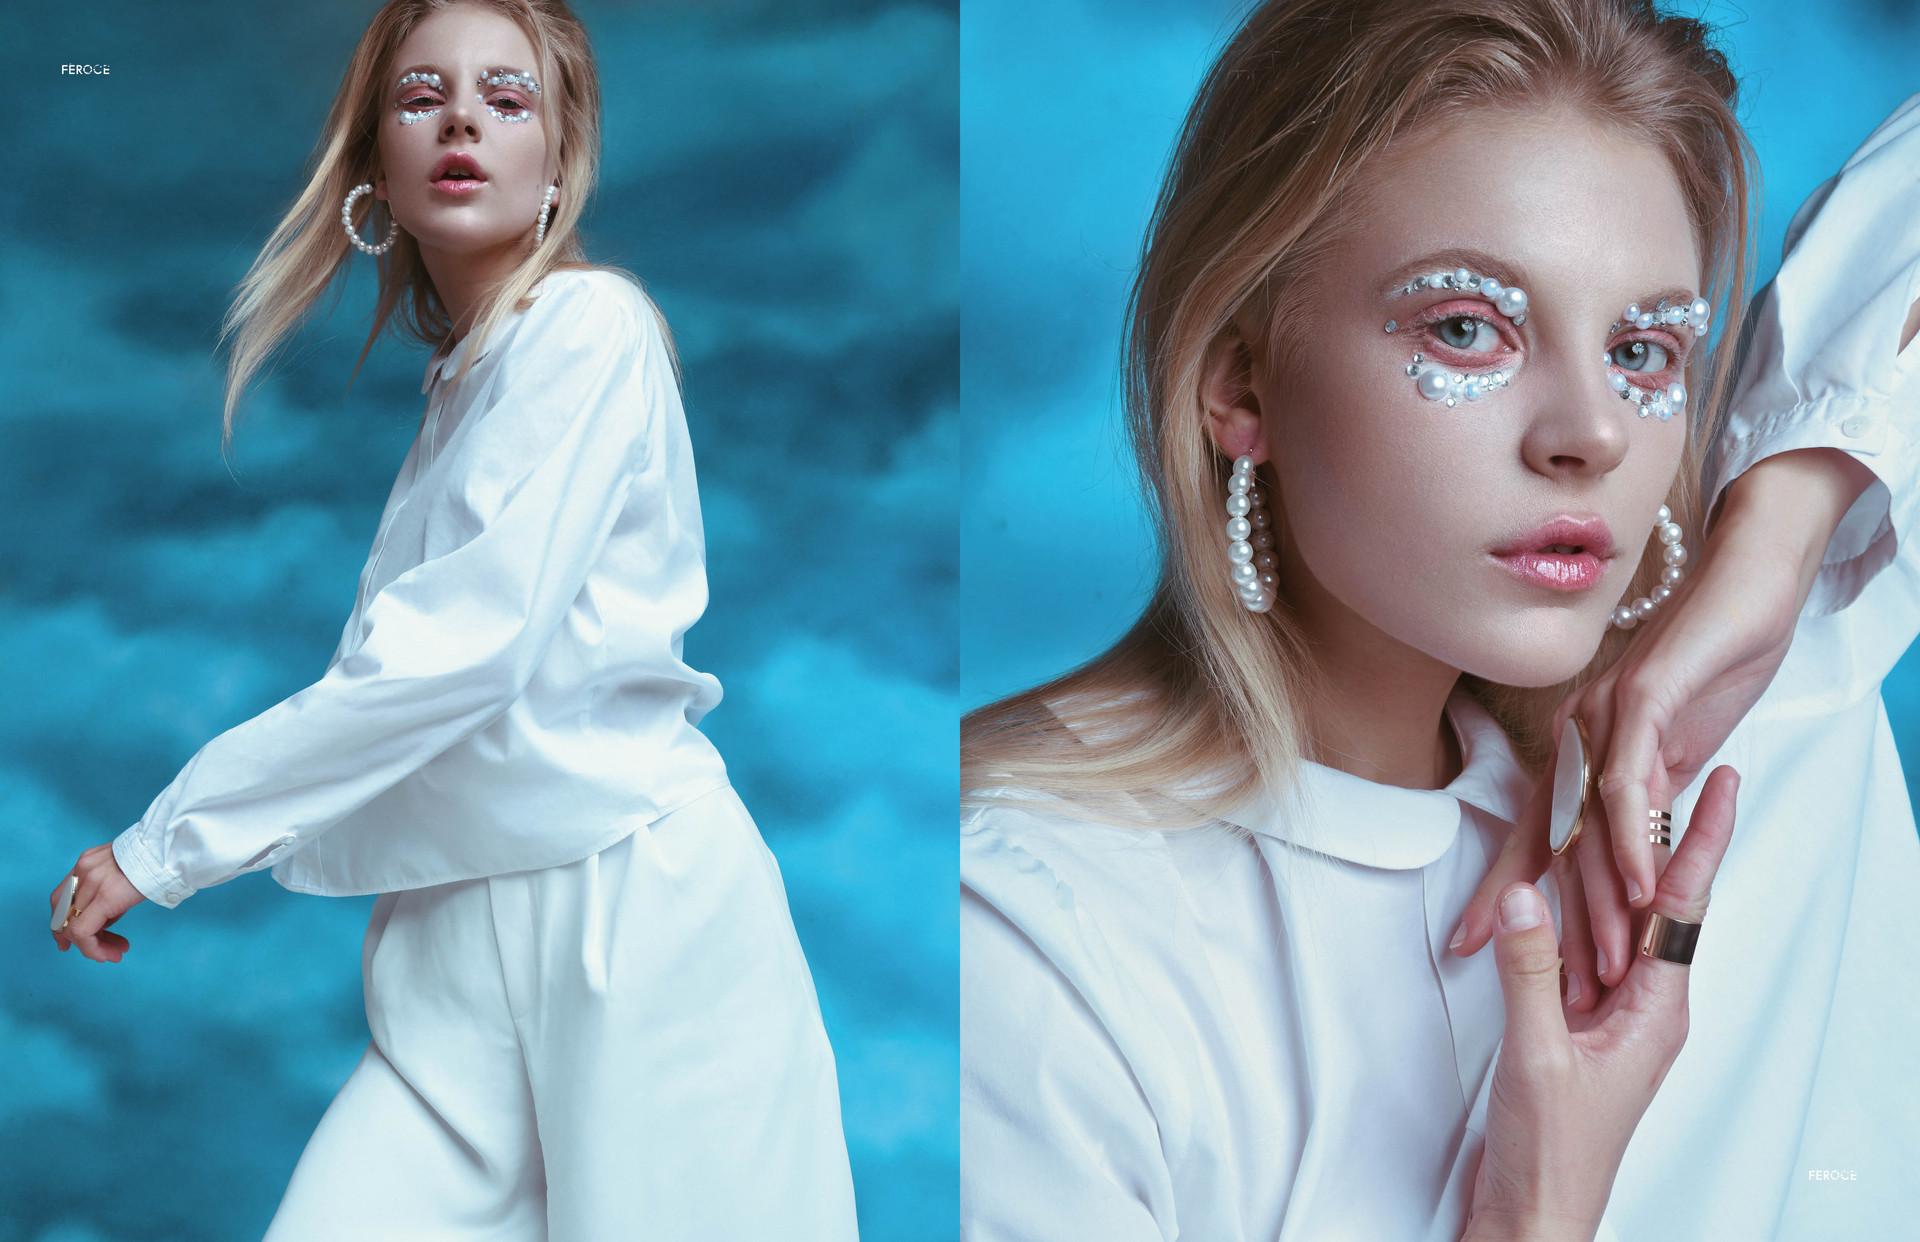 """Albino"" for Feroce Magazine"